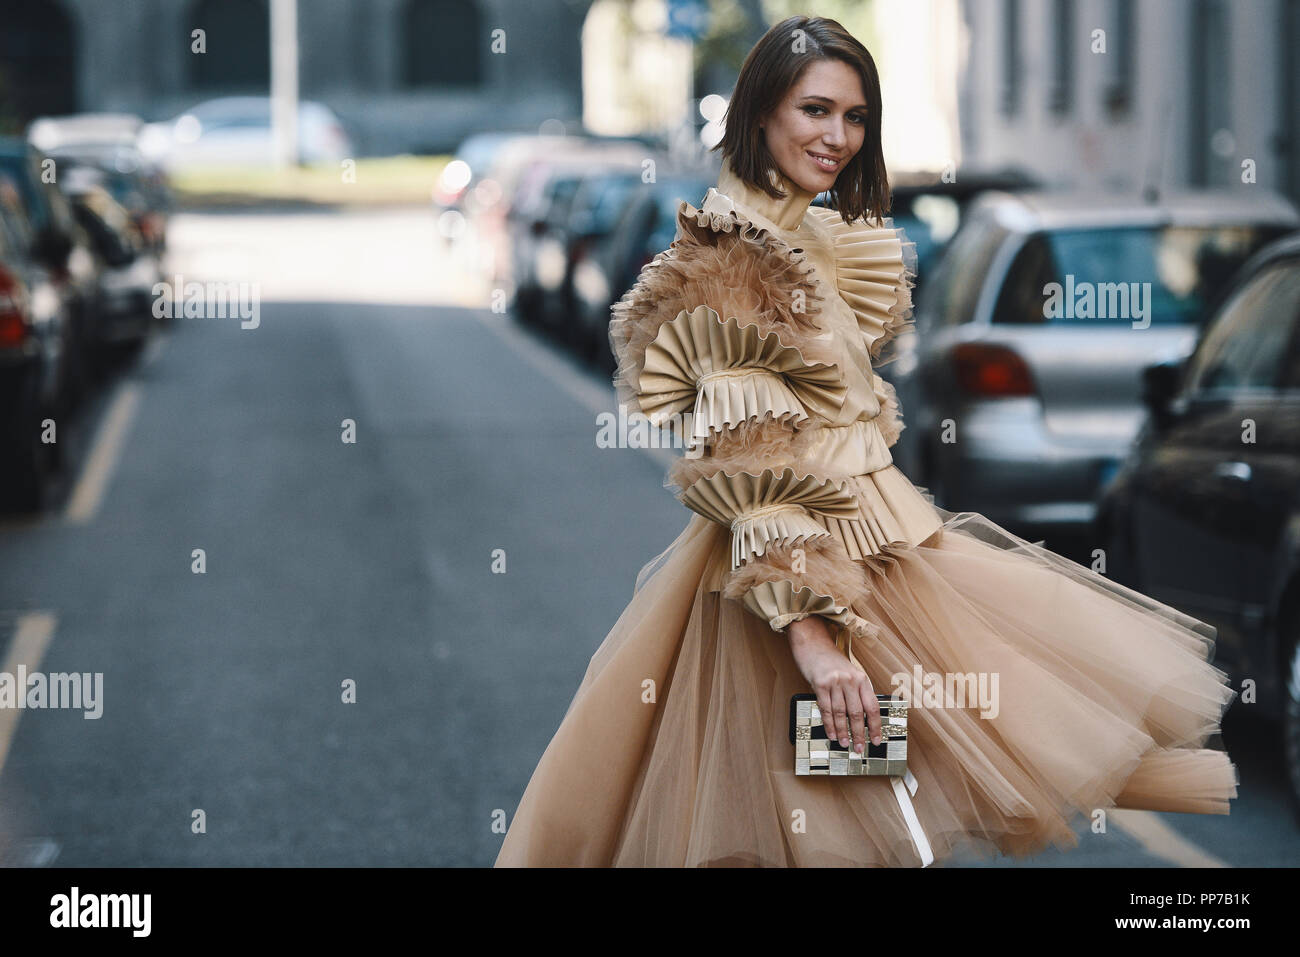 Milan, Italy - September 23, 2018: Street style outfits before Dolce Gabbana fashion show during Milan Fashion Week - - MFWSS19 Credit: Alberto Grosescu/Alamy Live News - Stock Image